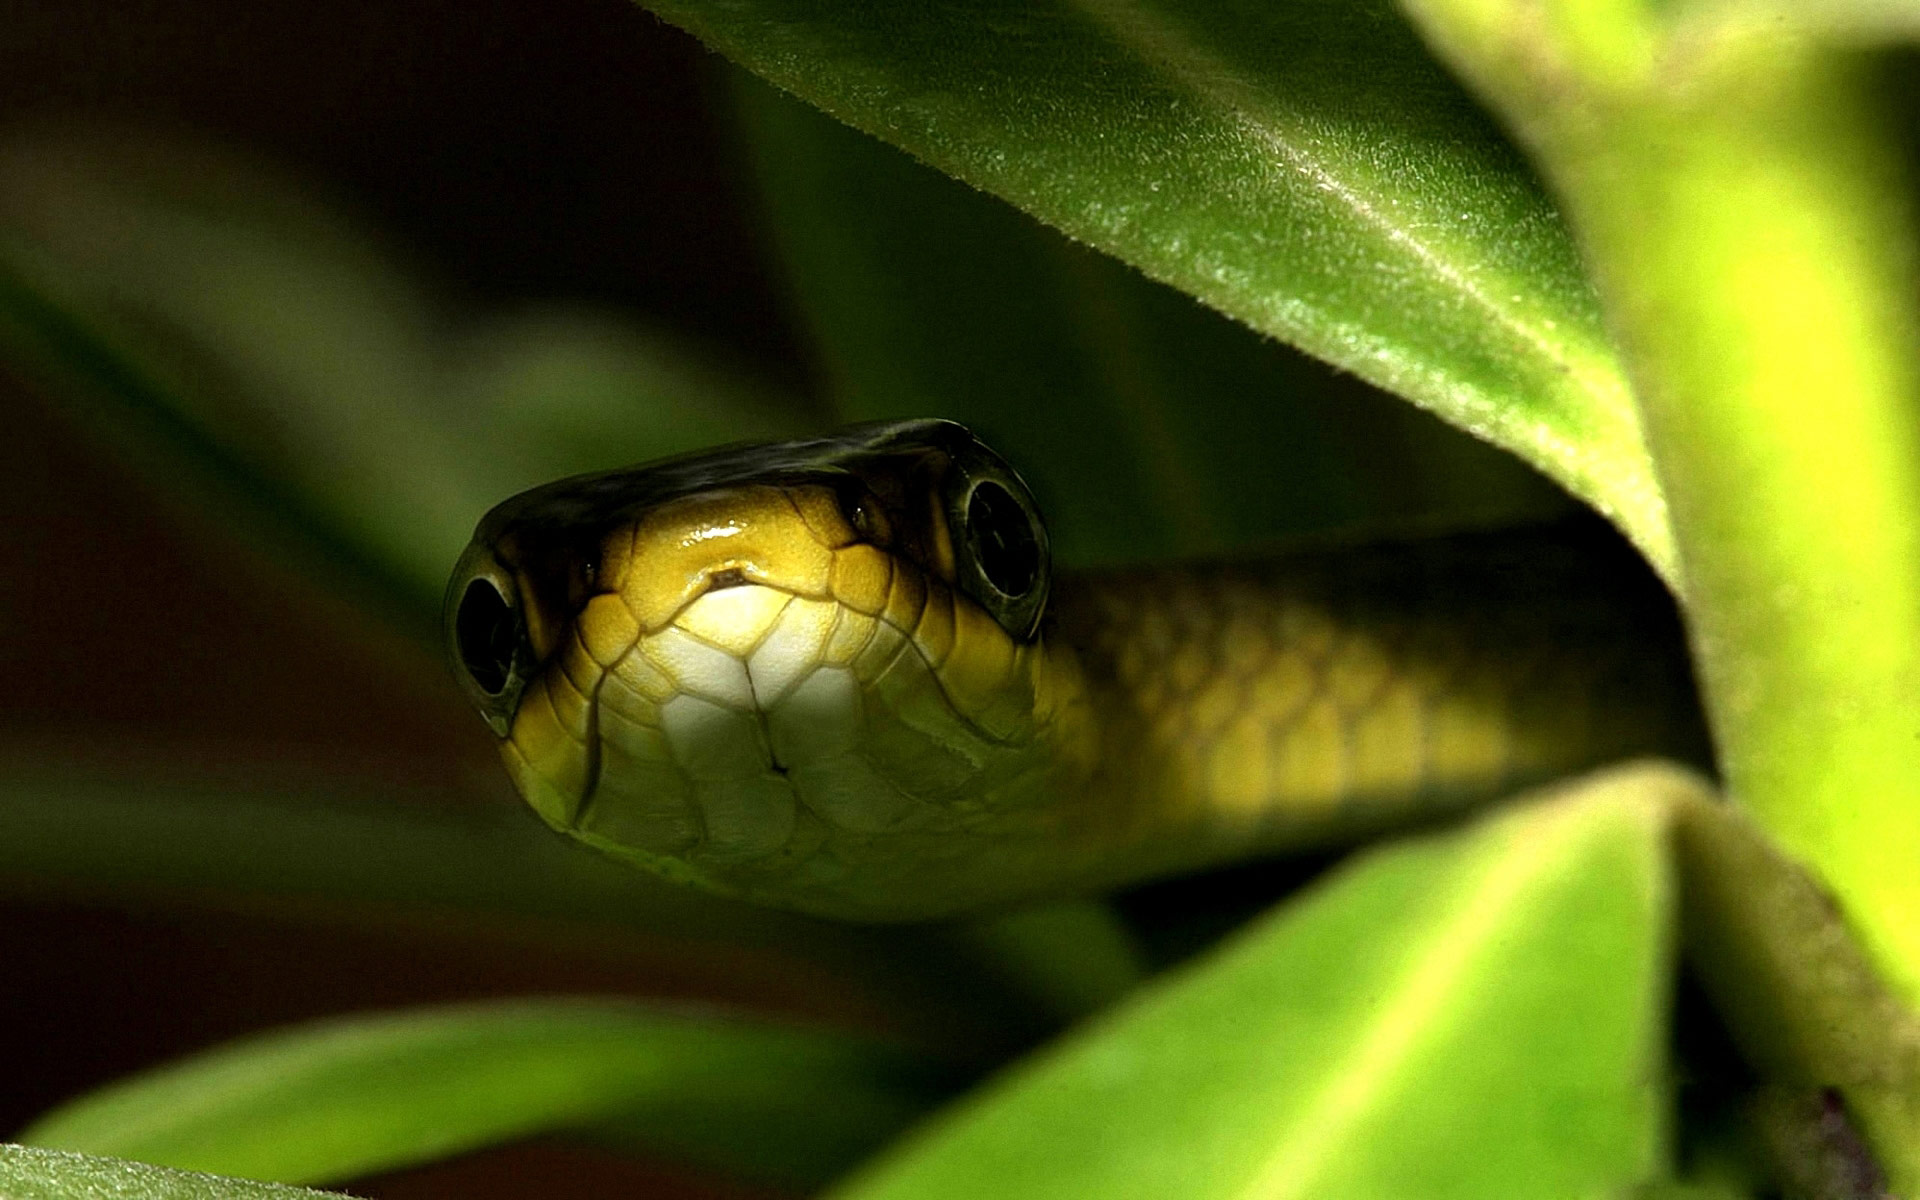 snake pictures in hd